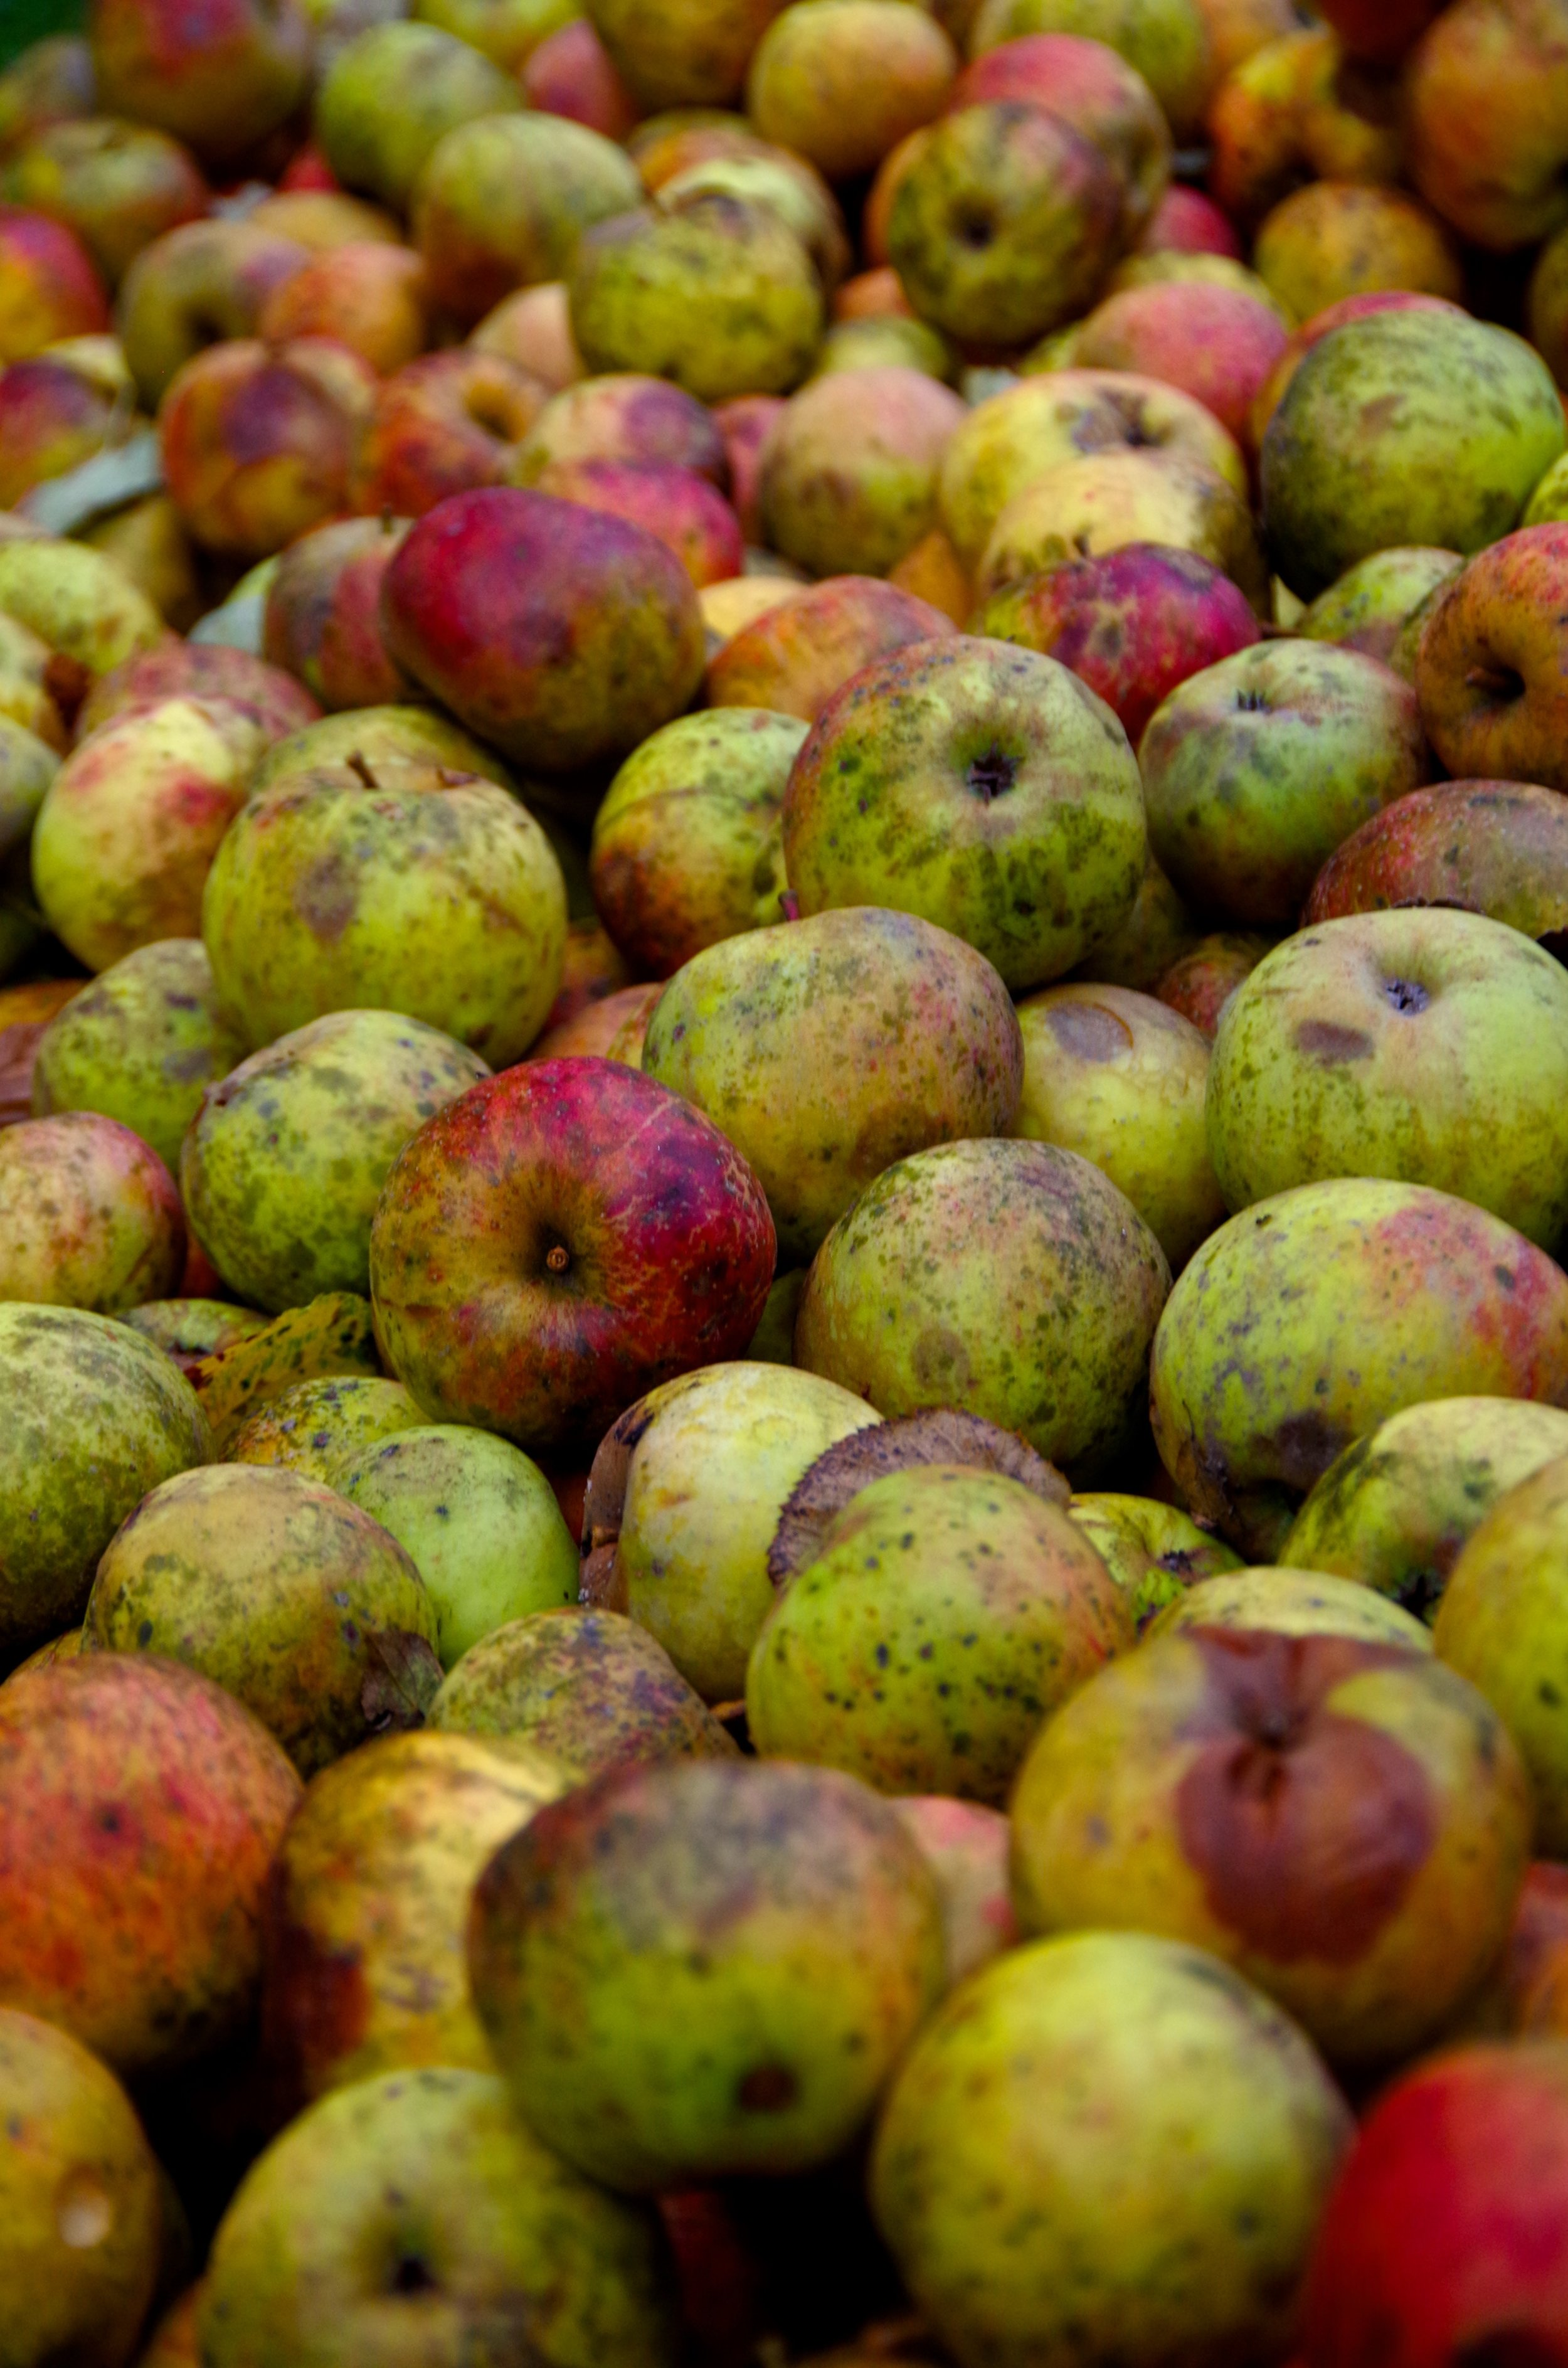 apples with physical imperfections like those of this mixed bin sometimes make the best cider